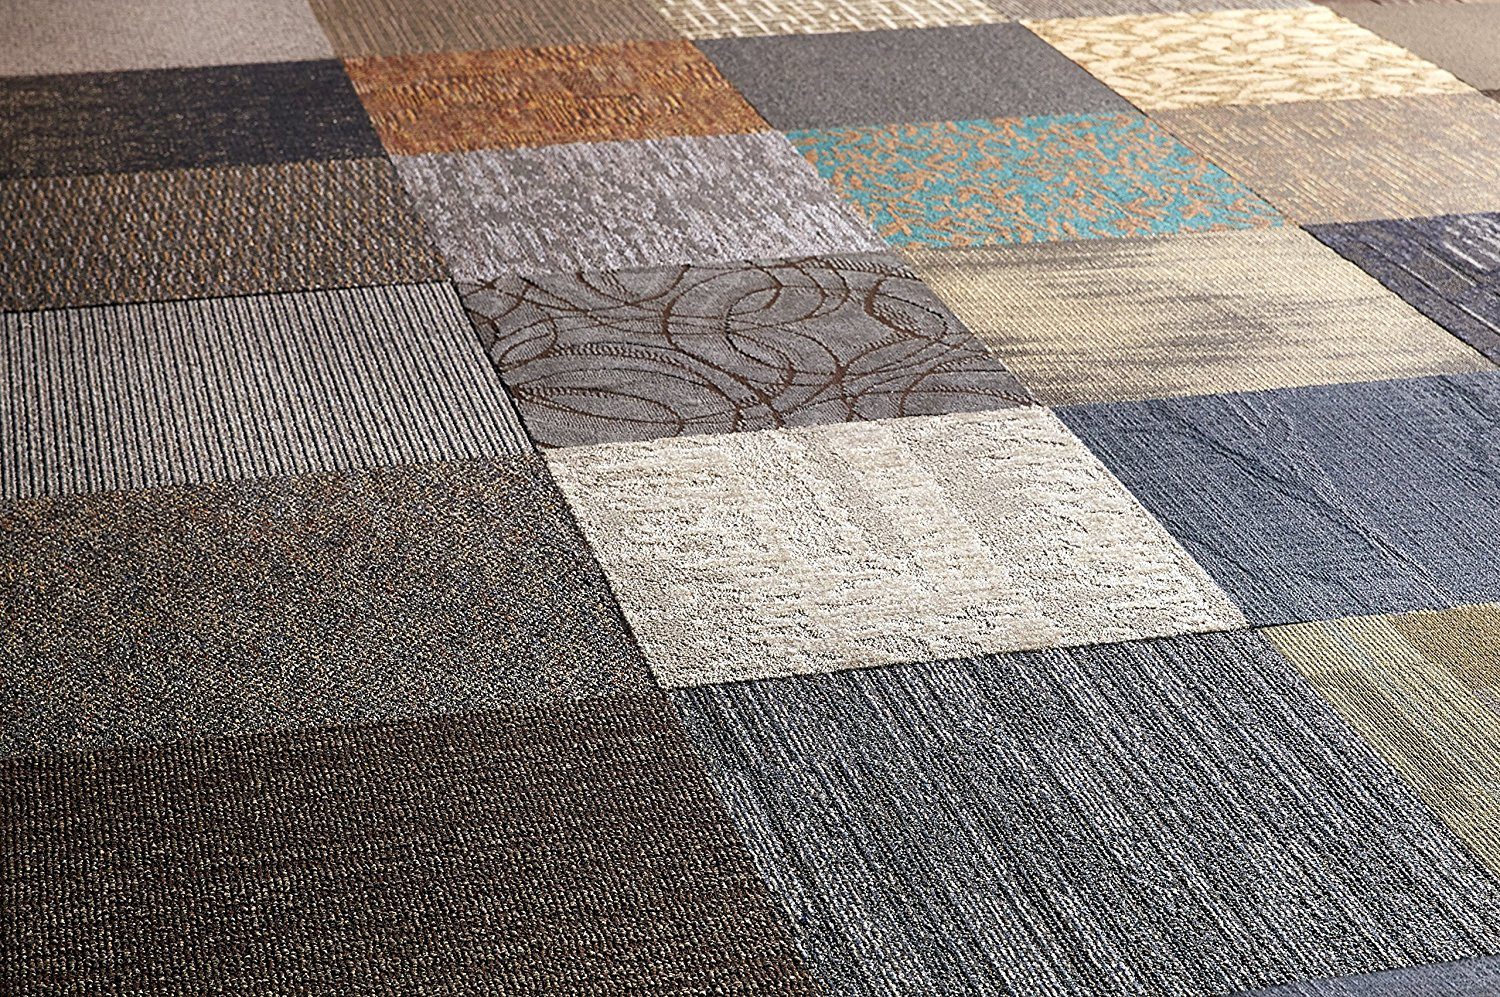 Global carpet tile market 2017 industry growth with cagr at 2022 global carpet tile market 2017 industry growth with cagr at 2022 and forecast research report baanklon Image collections